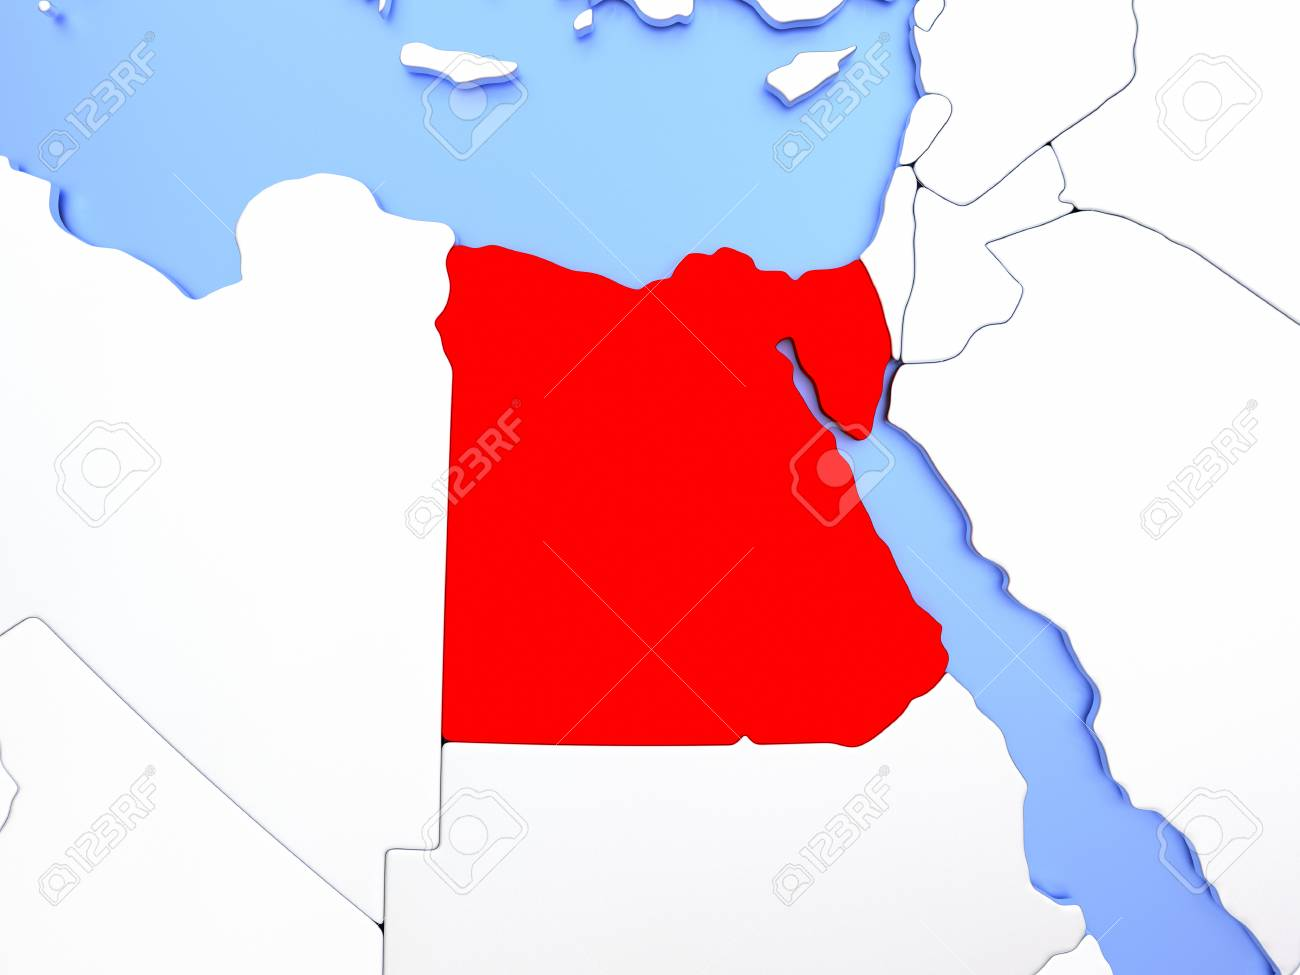 Map of egypt highlighted in red on simple shiny metallic map stock illustration map of egypt highlighted in red on simple shiny metallic map with clear country borders 3d illustration gumiabroncs Gallery